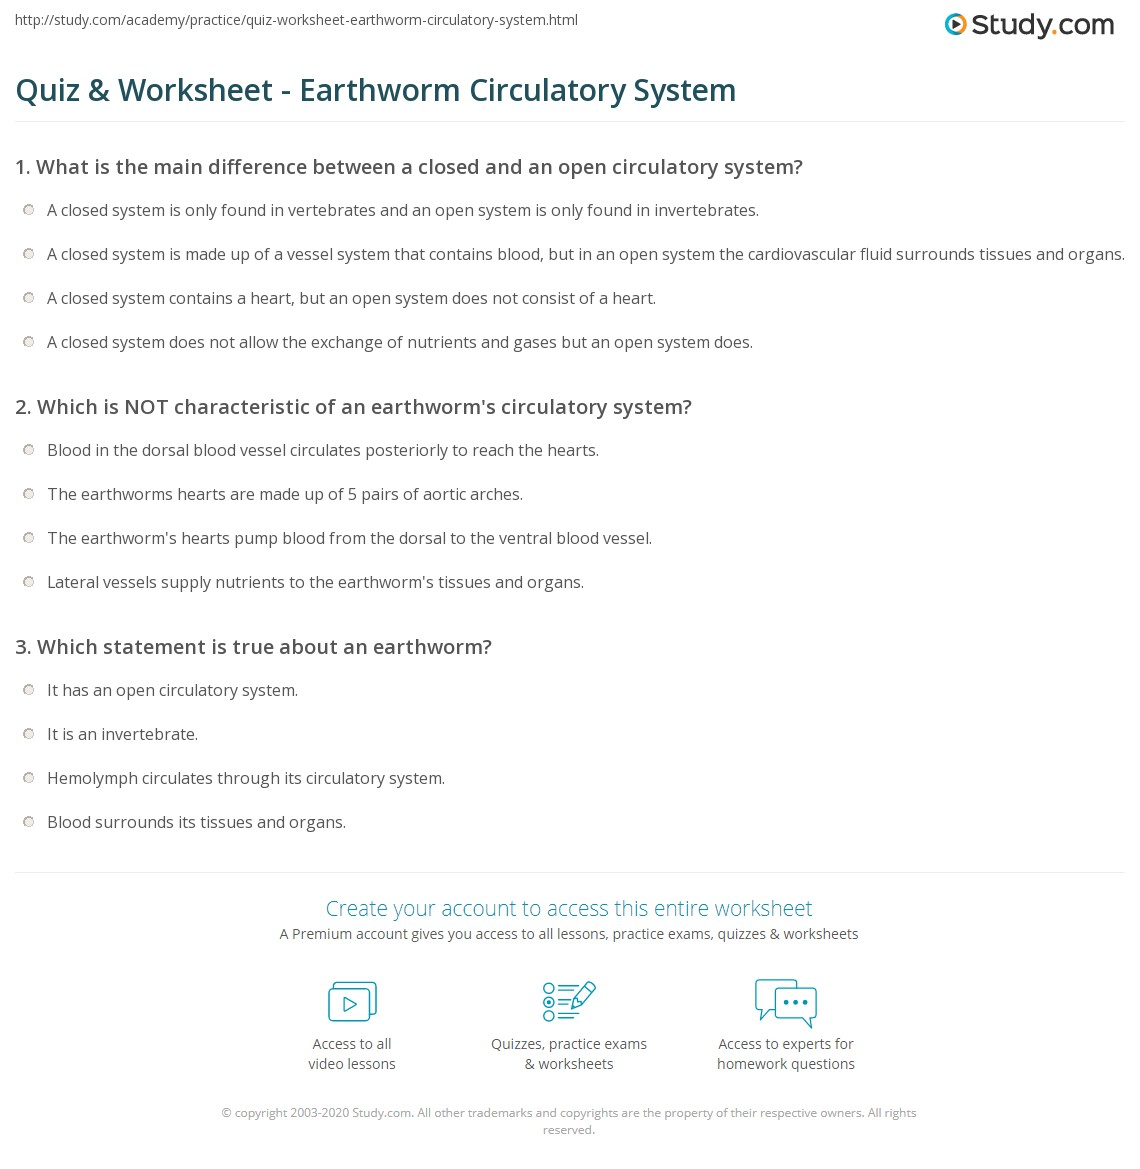 Quiz worksheet earthworm circulatory system study print do earthworms have a closed or open circulatory system worksheet ccuart Images